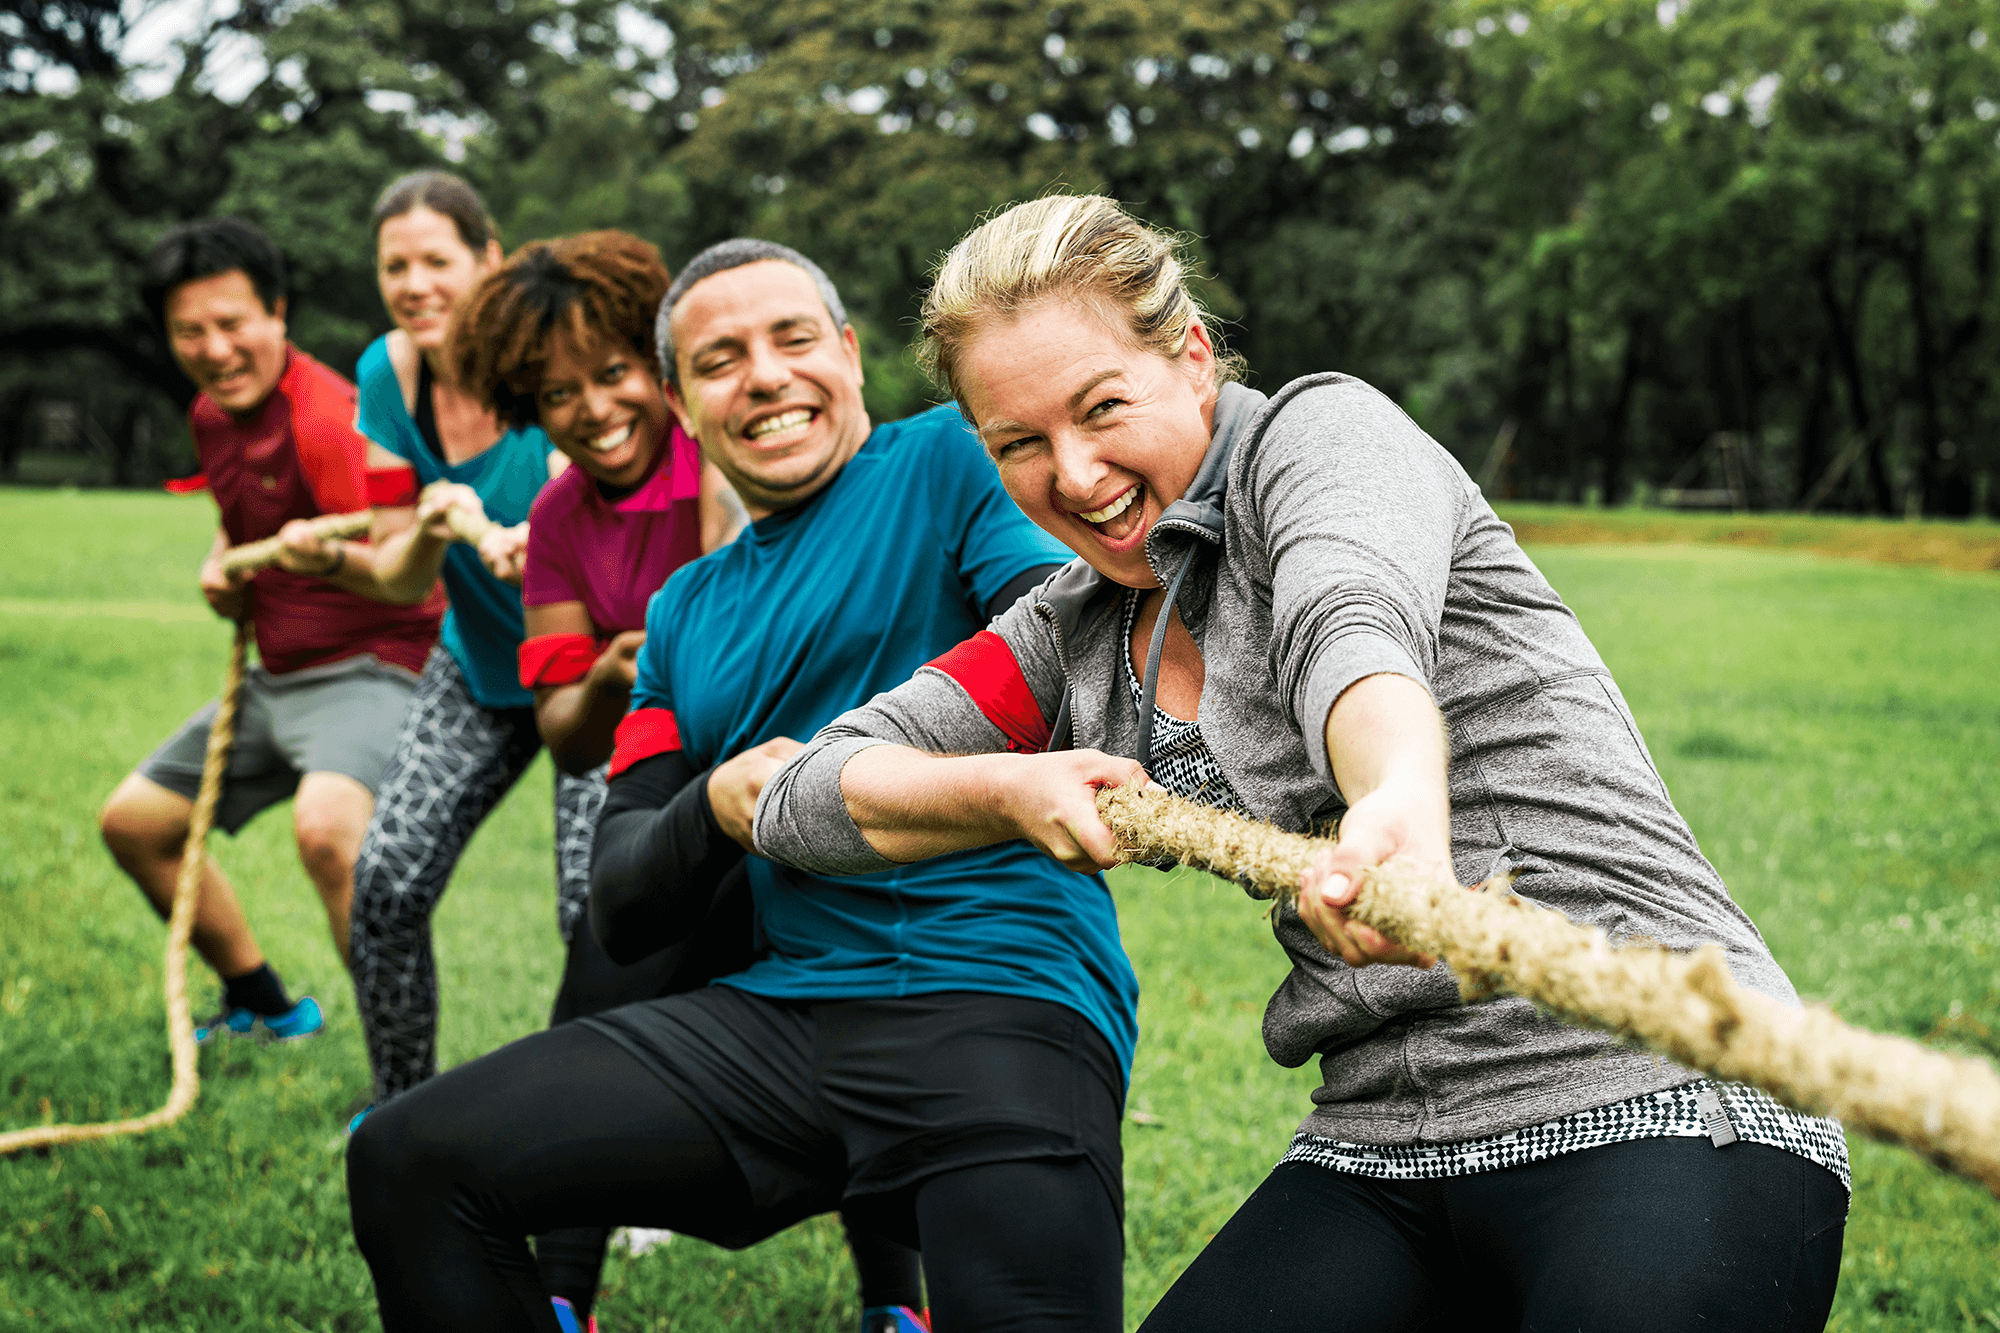 How to Plan a Successful Team Building Retreat for Your Parks and Rec Team